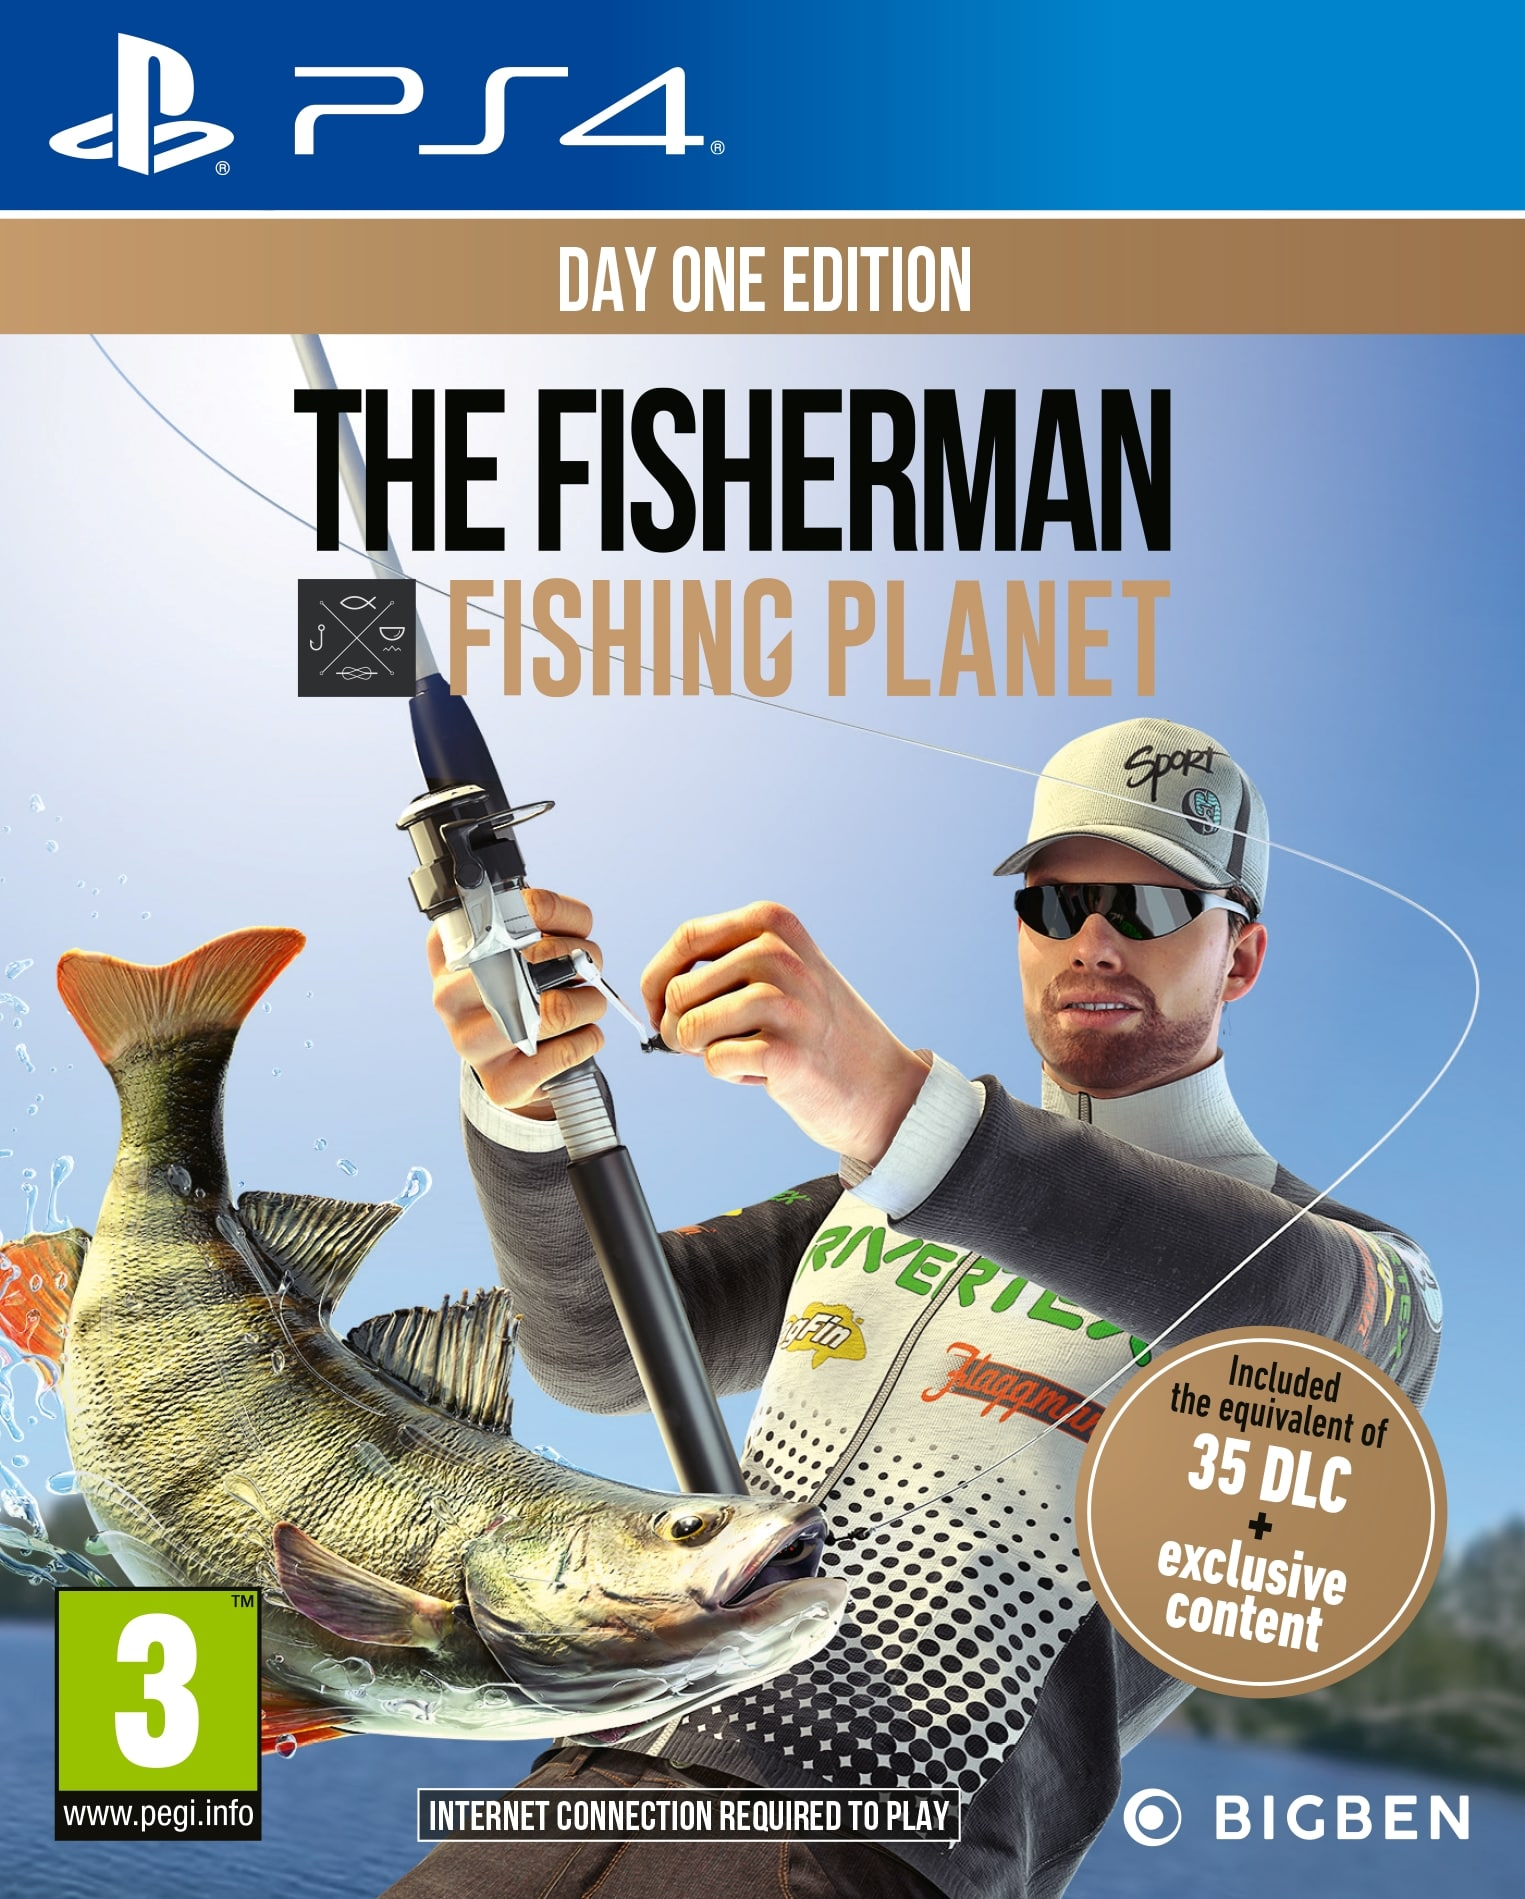 Buy The Fisherman: Fishing Planet - Day One Edition